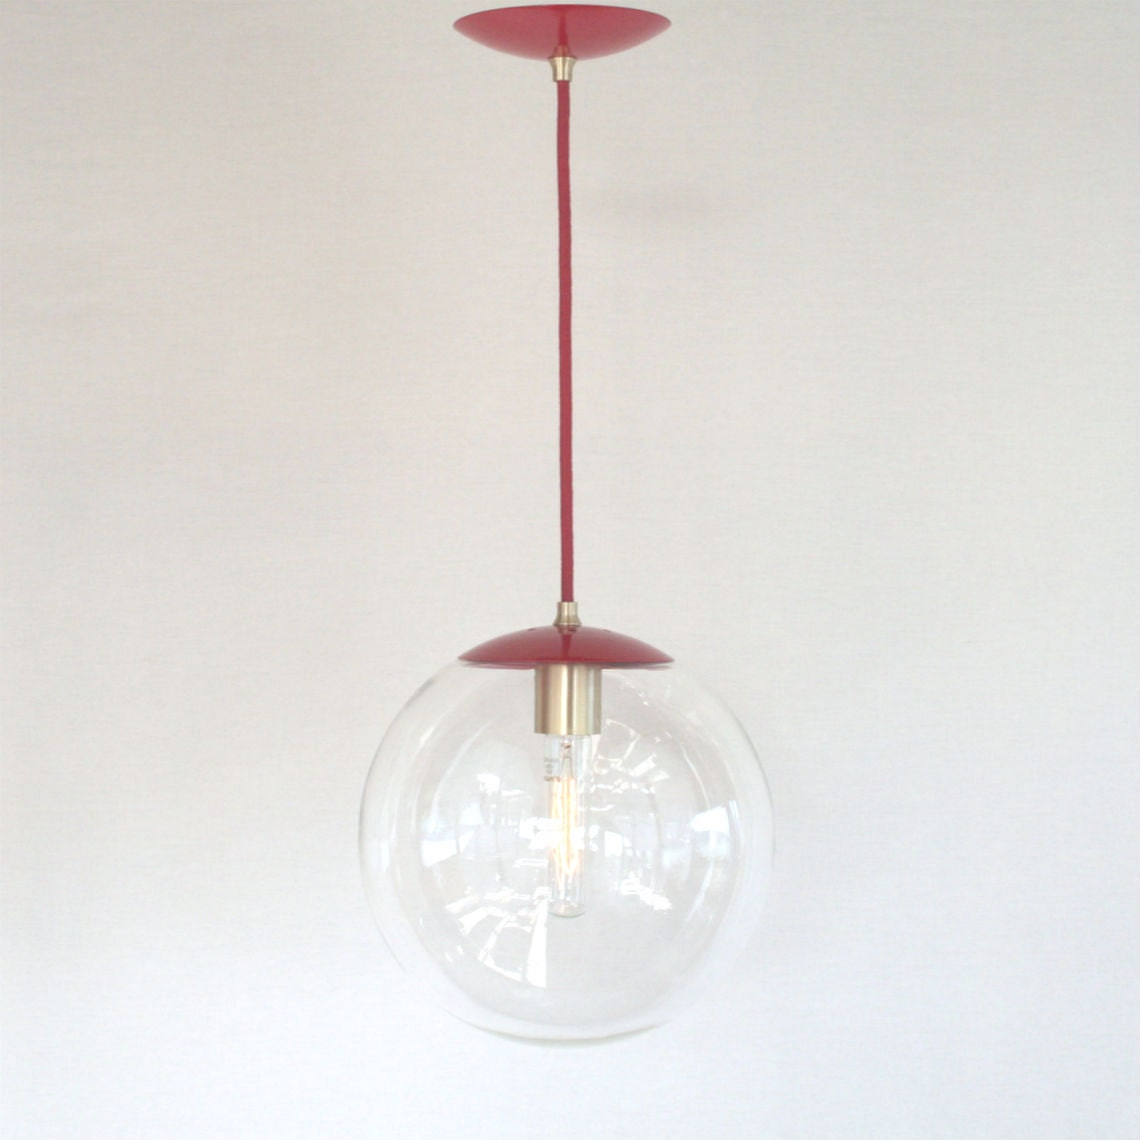 Red mid century modern glass globe pendant light 10 for Mid century modern globe pendant light